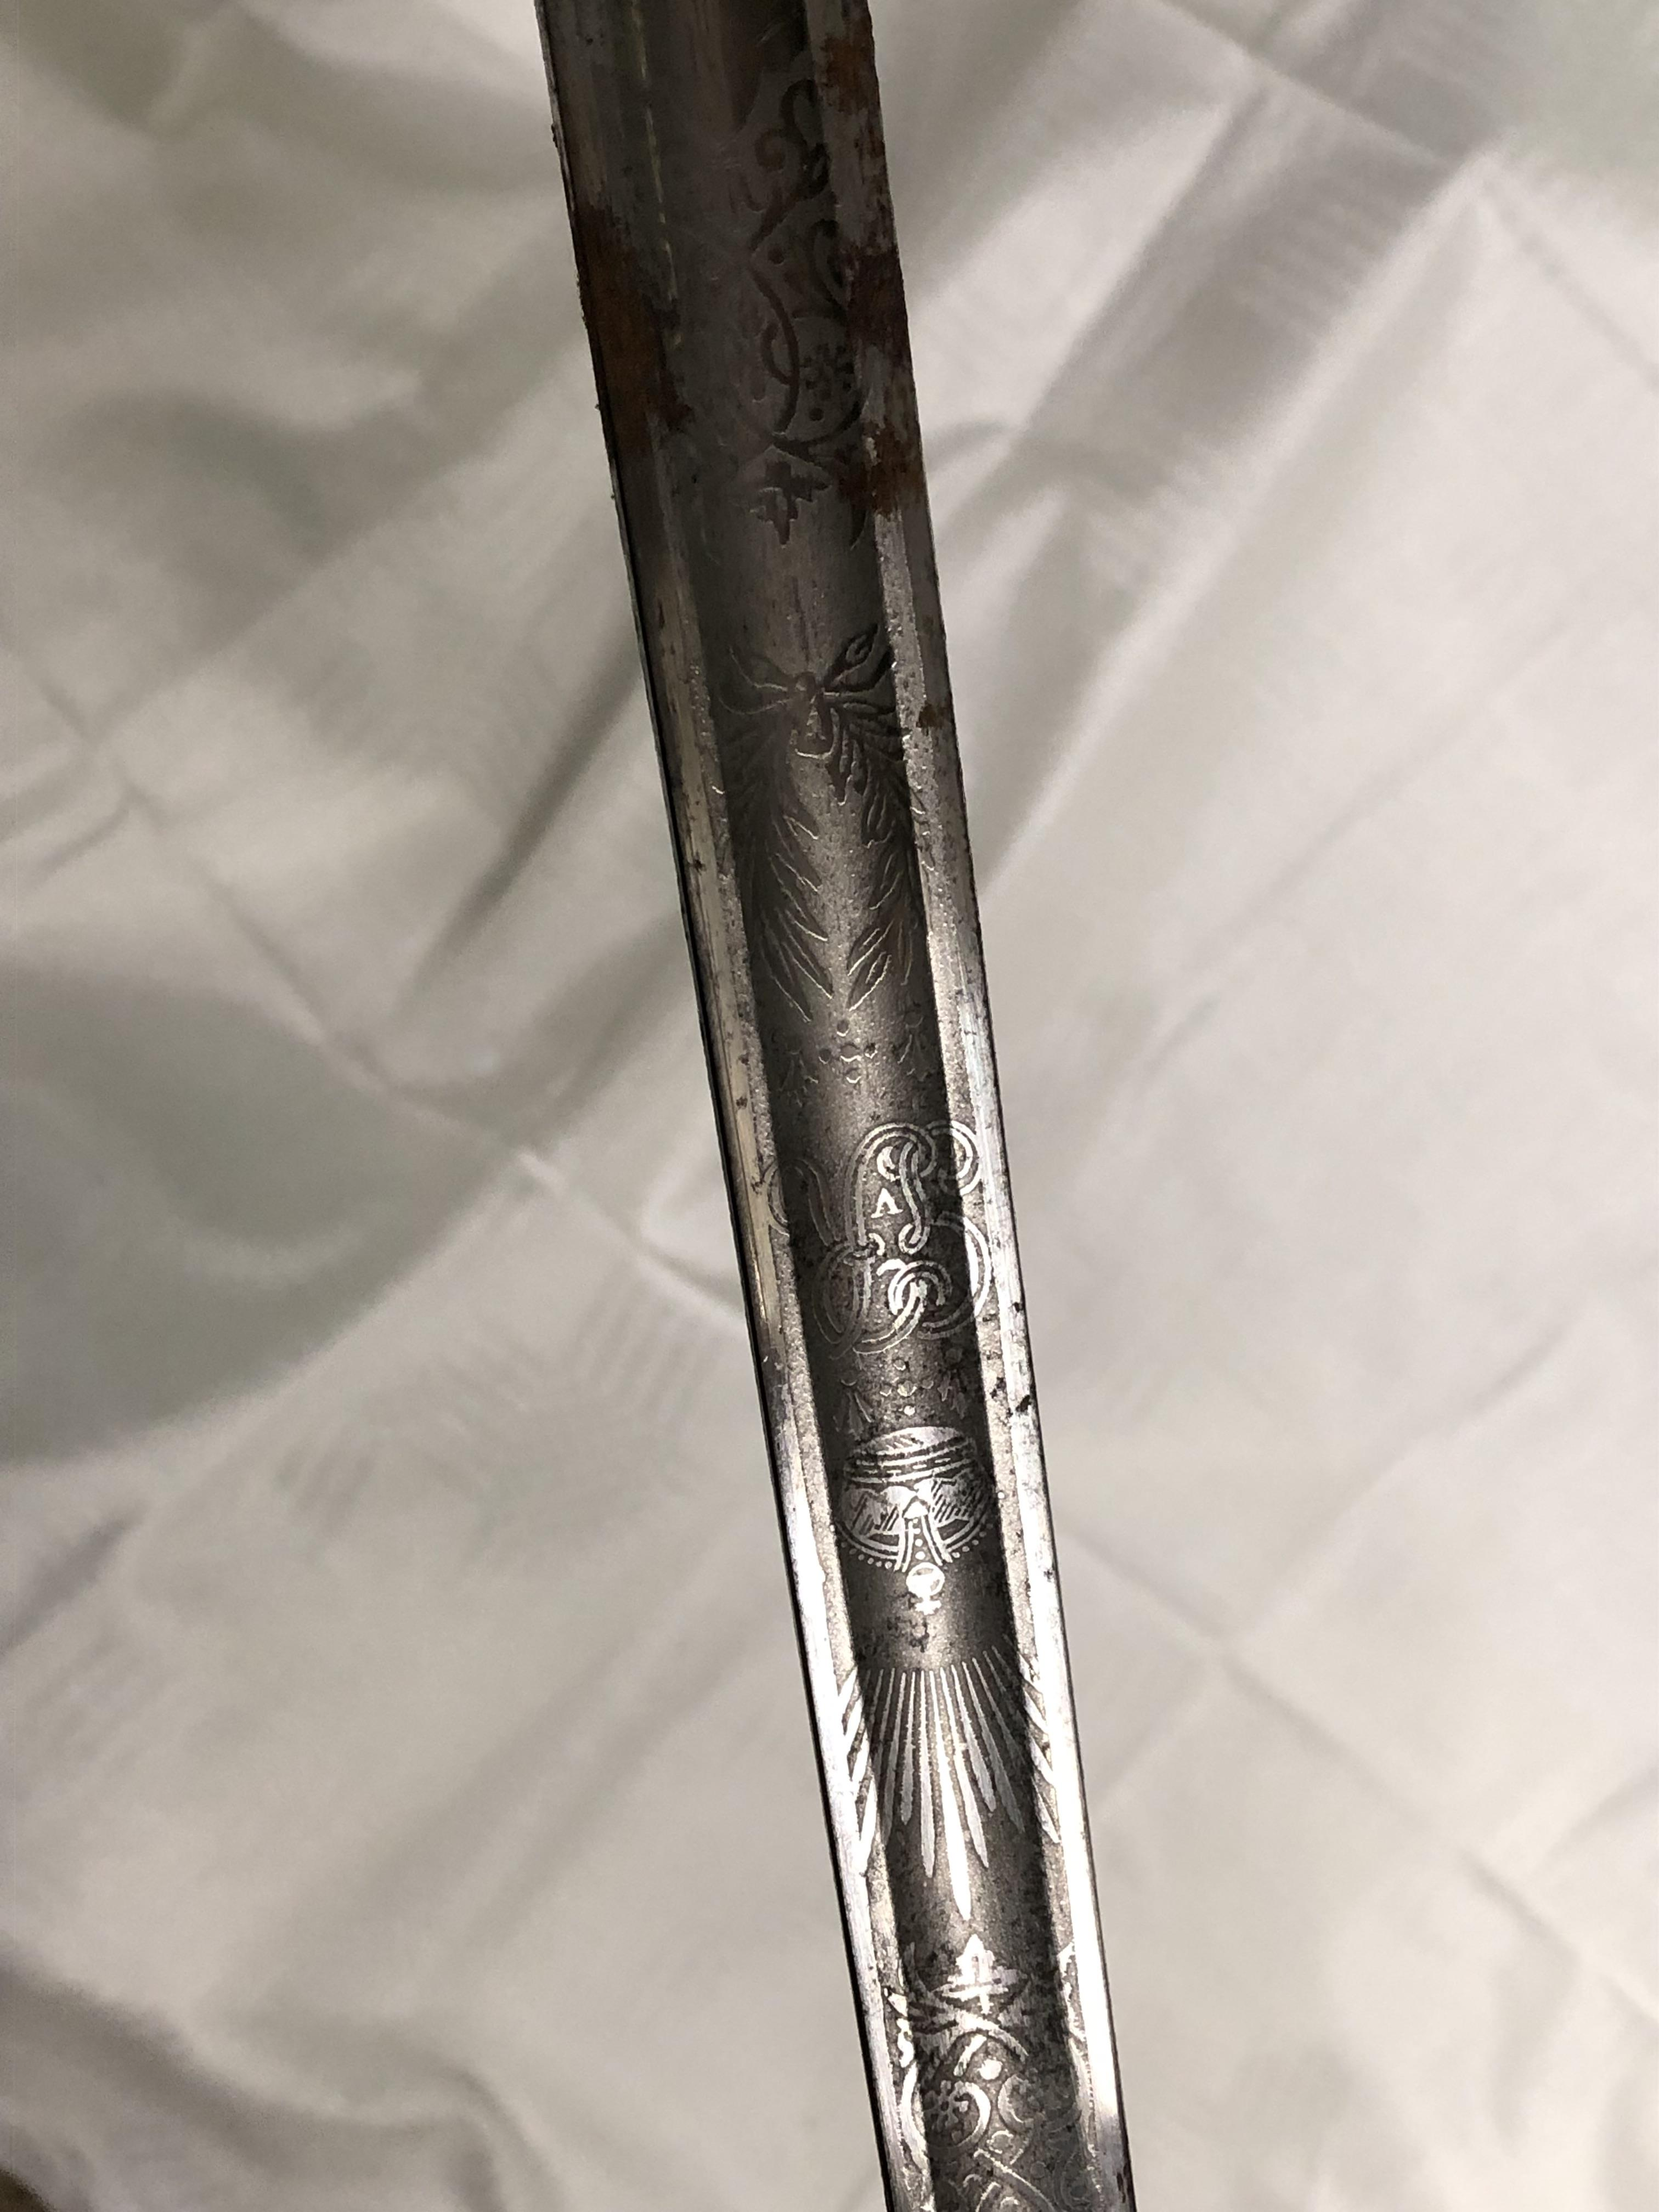 Lot 254 - MID 20TH CENTURY ETCHED BLADED DRESS SWORD WITH BASKET HILT IN A LEATHER SCABBARD (BLADE - 85CM L)